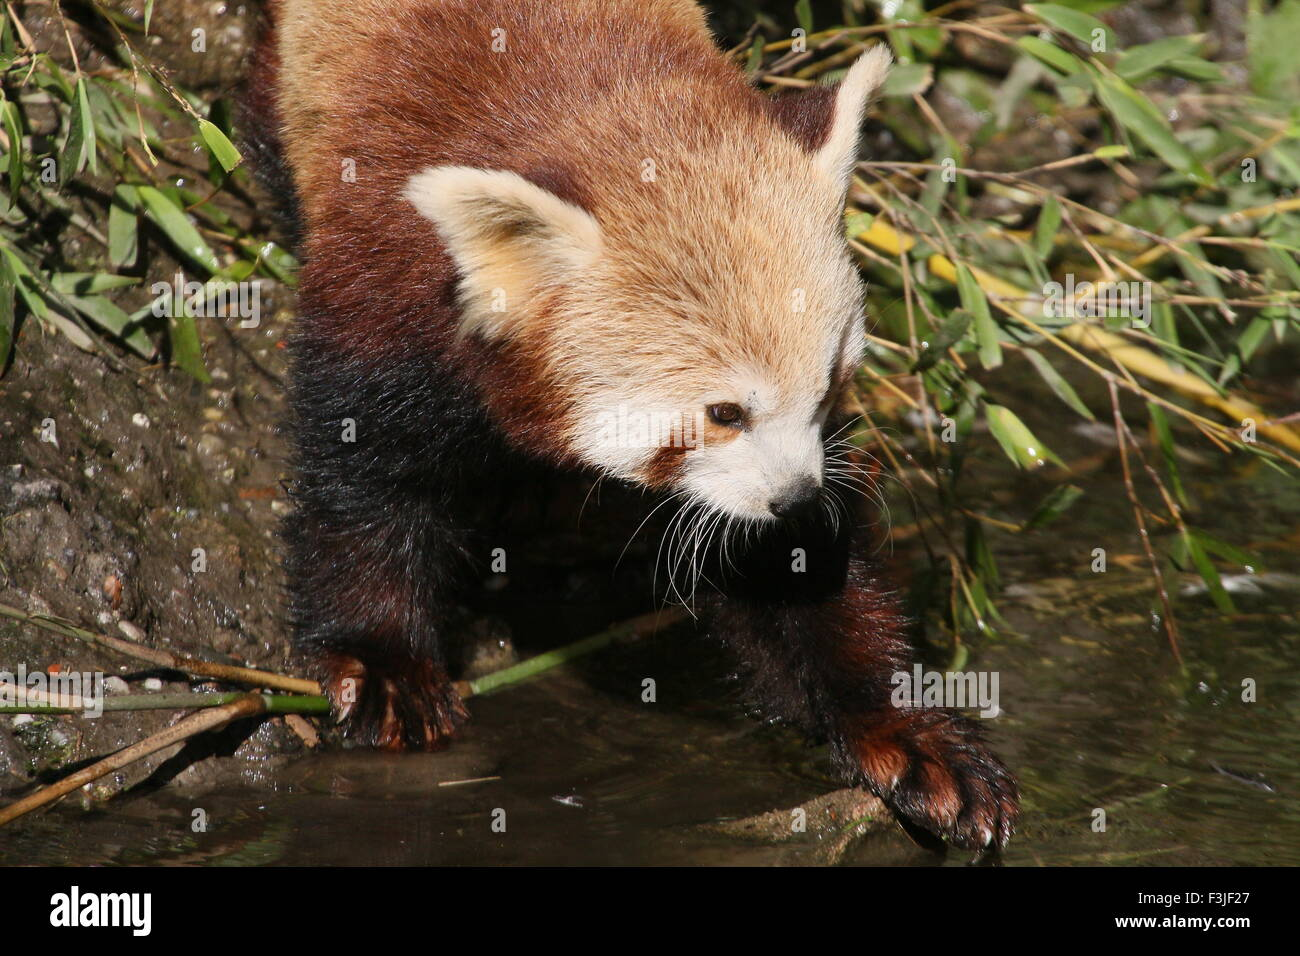 Asian Red Panda (Ailurus fulgens) at the bank of a  stream - Stock Image